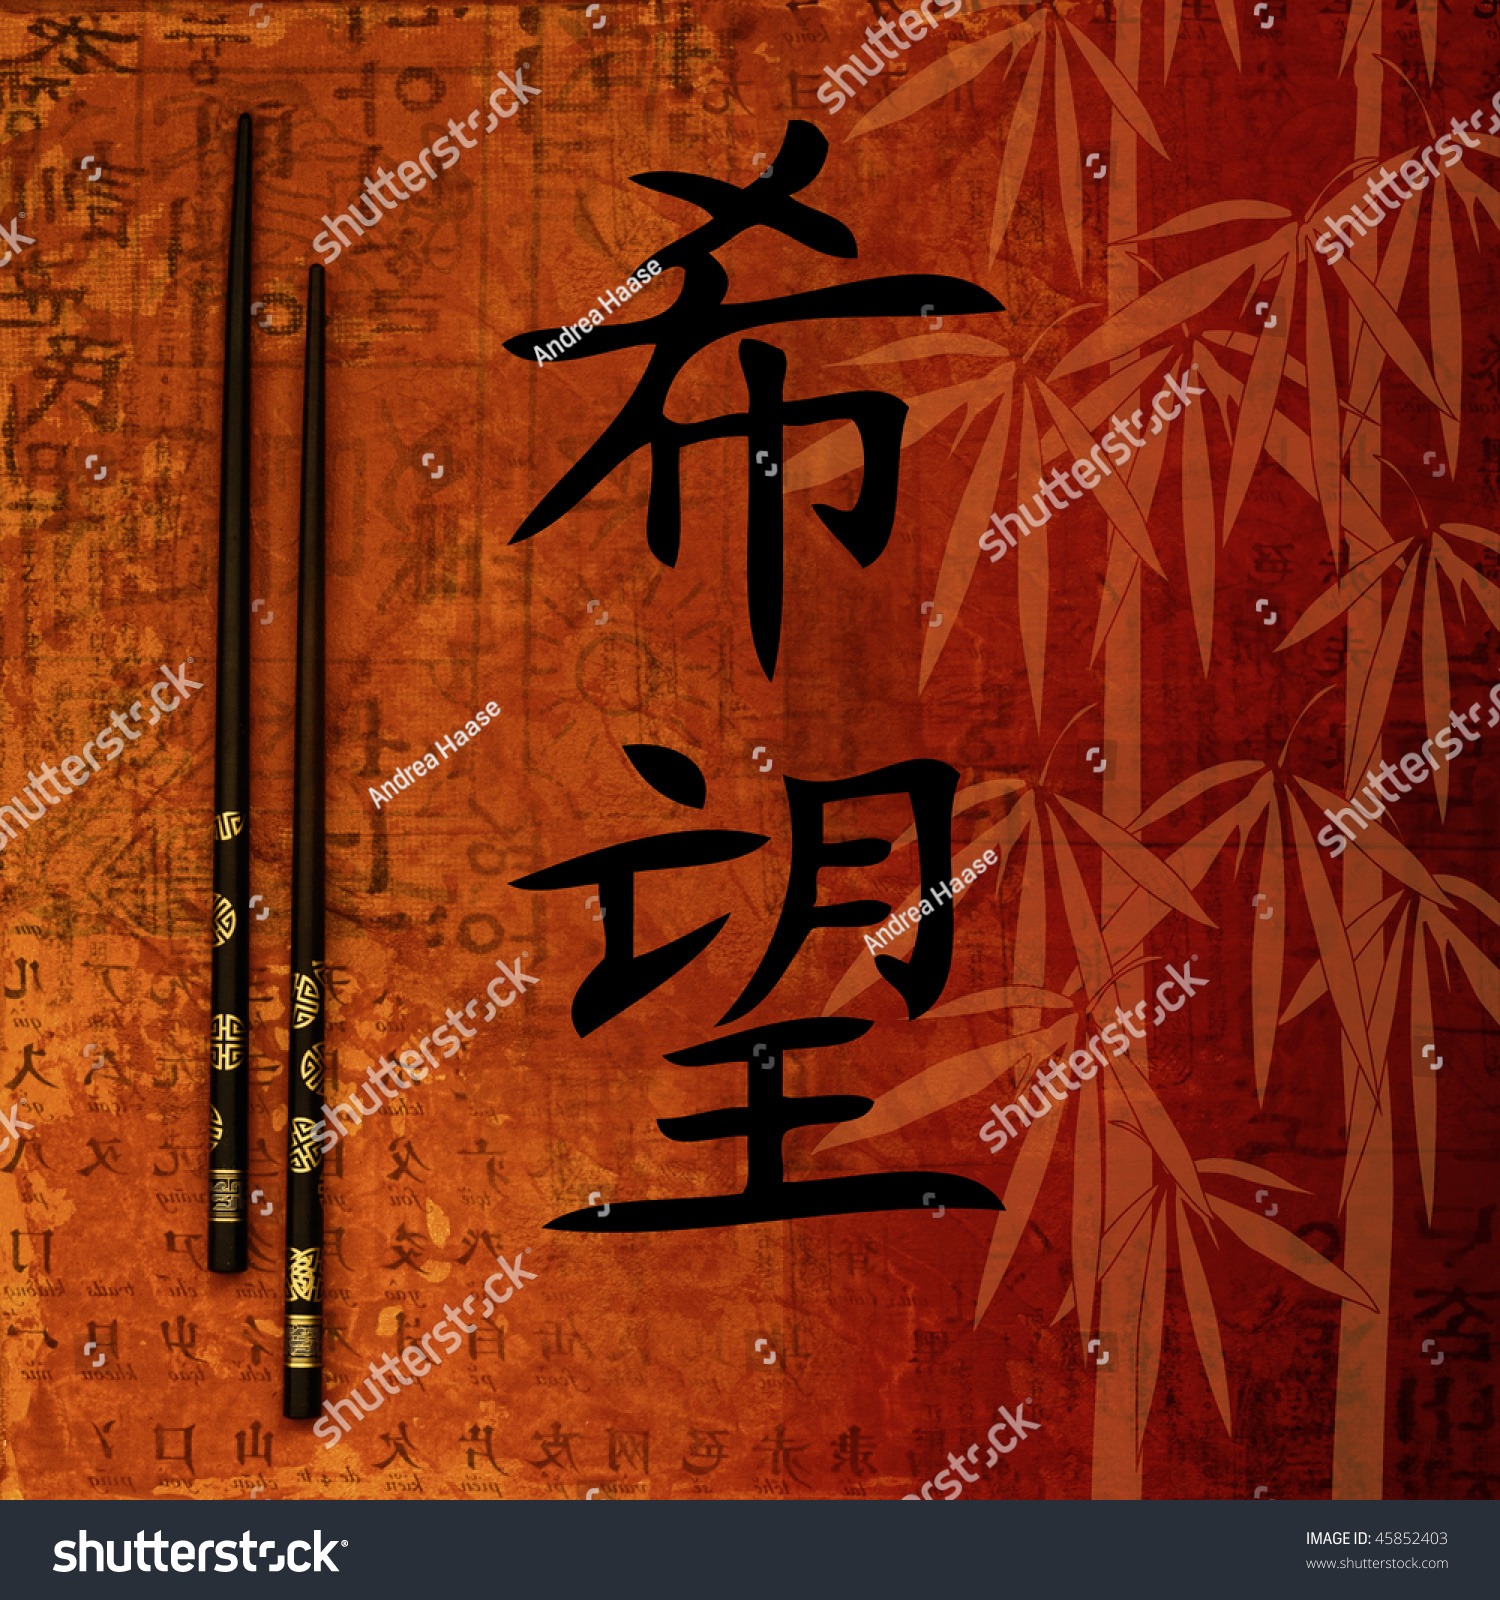 Chinese Symbol For Hope Full Hd Pictures 4k Ultra Full Wallpapers